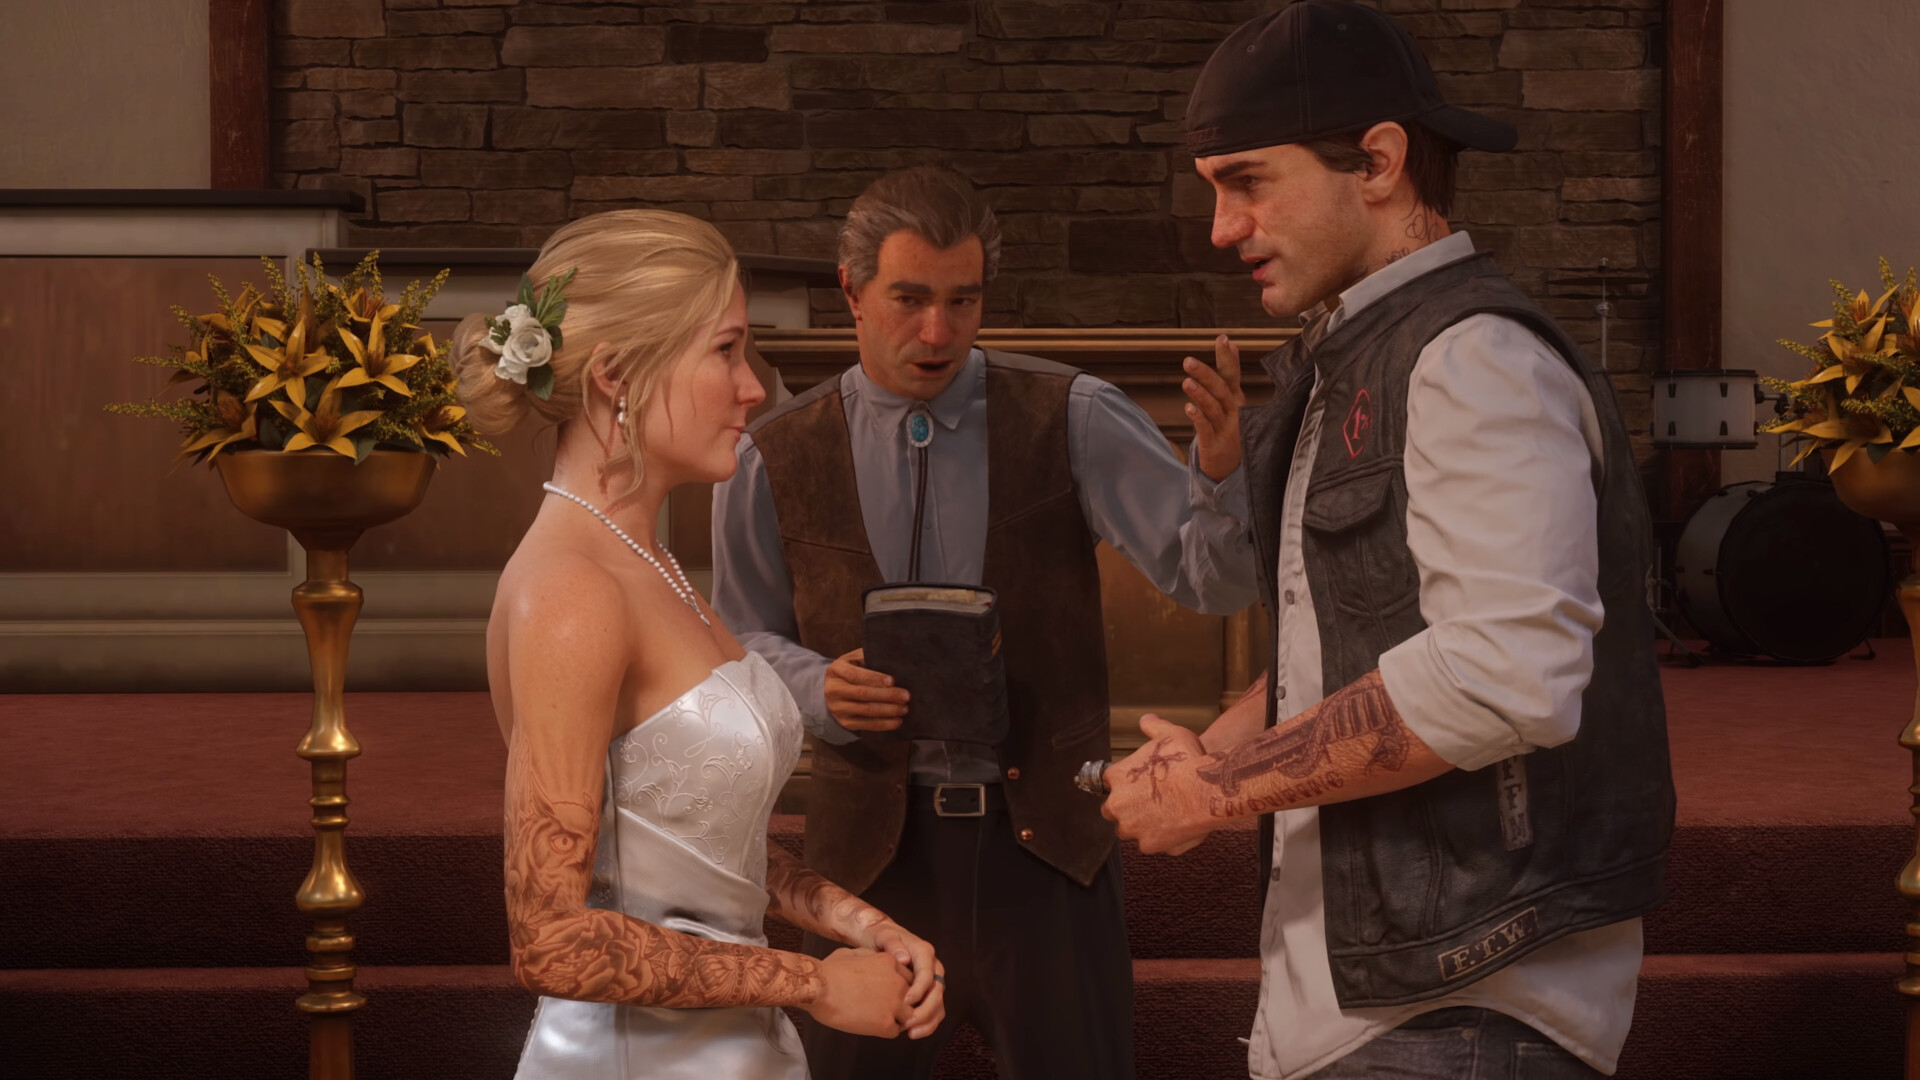 Dustin brown days gone sarah deacon s wedding ps4 0 56 screenshot